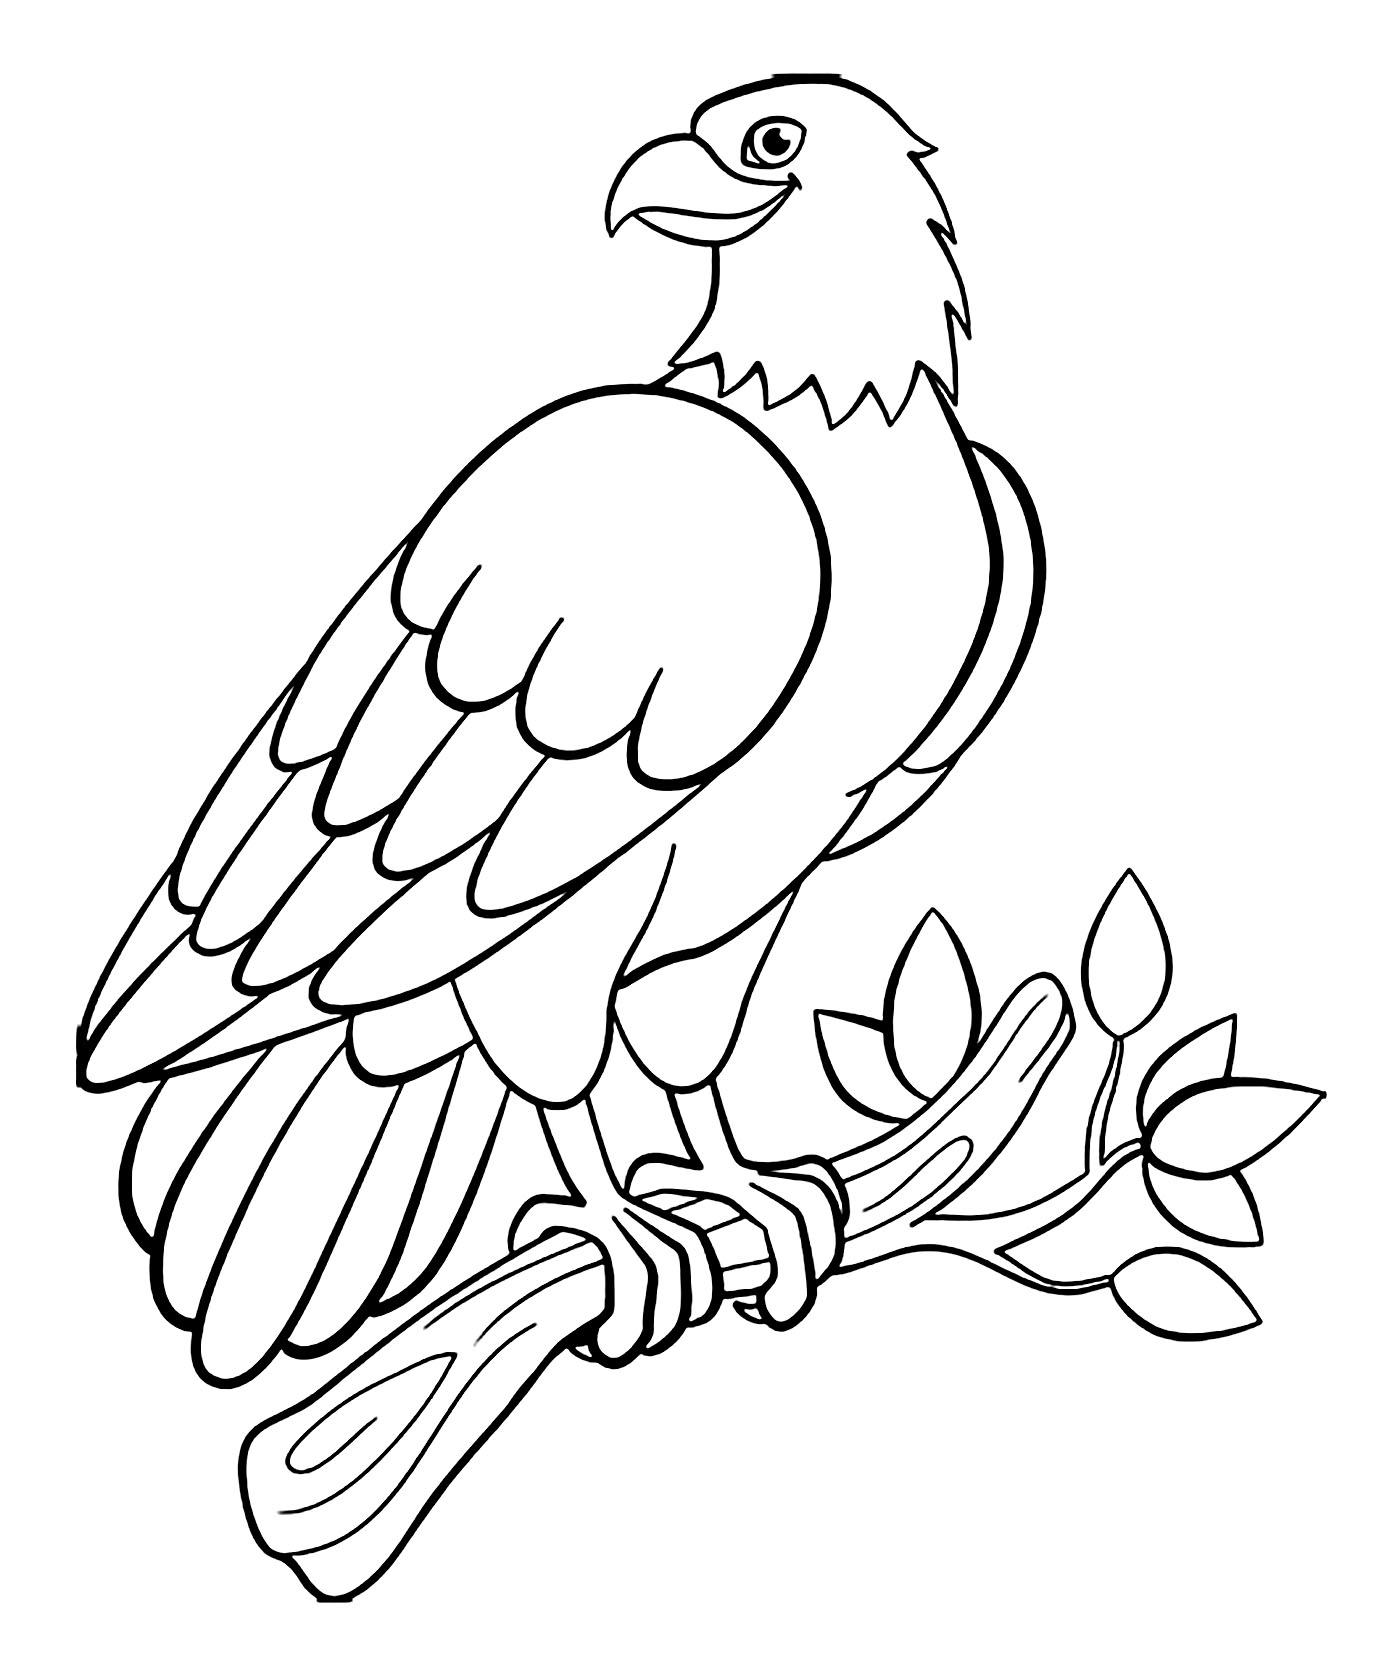 printable pictures of birds birds free to color for children birds kids coloring pages birds pictures of printable